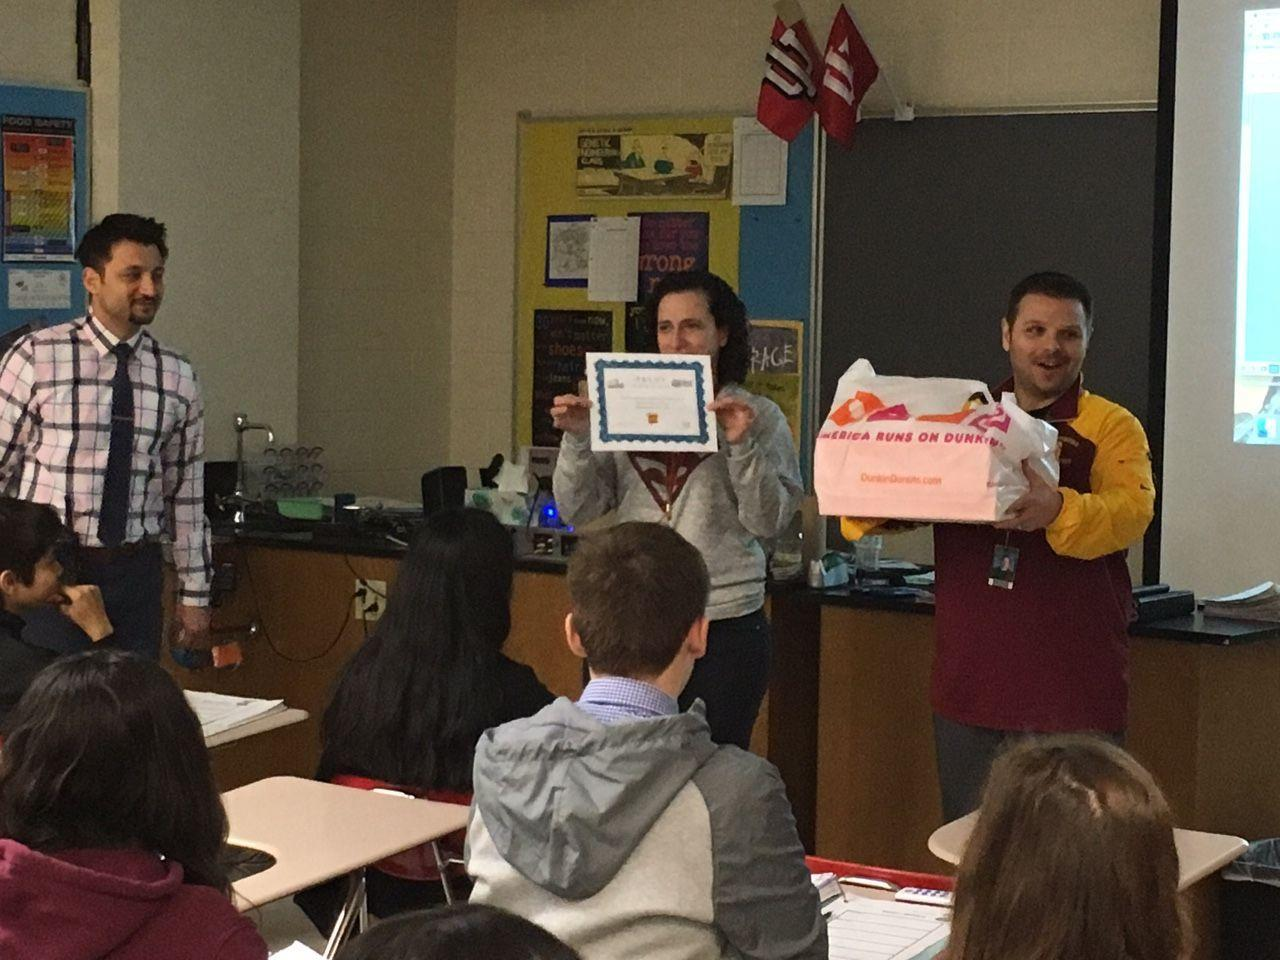 Mr. Matarazzo and Mr. Mehreioskouei award Mrs. Hensley's class for winning the Trudy competition.  Classes will continue to compete throughout the remainder of the school year.